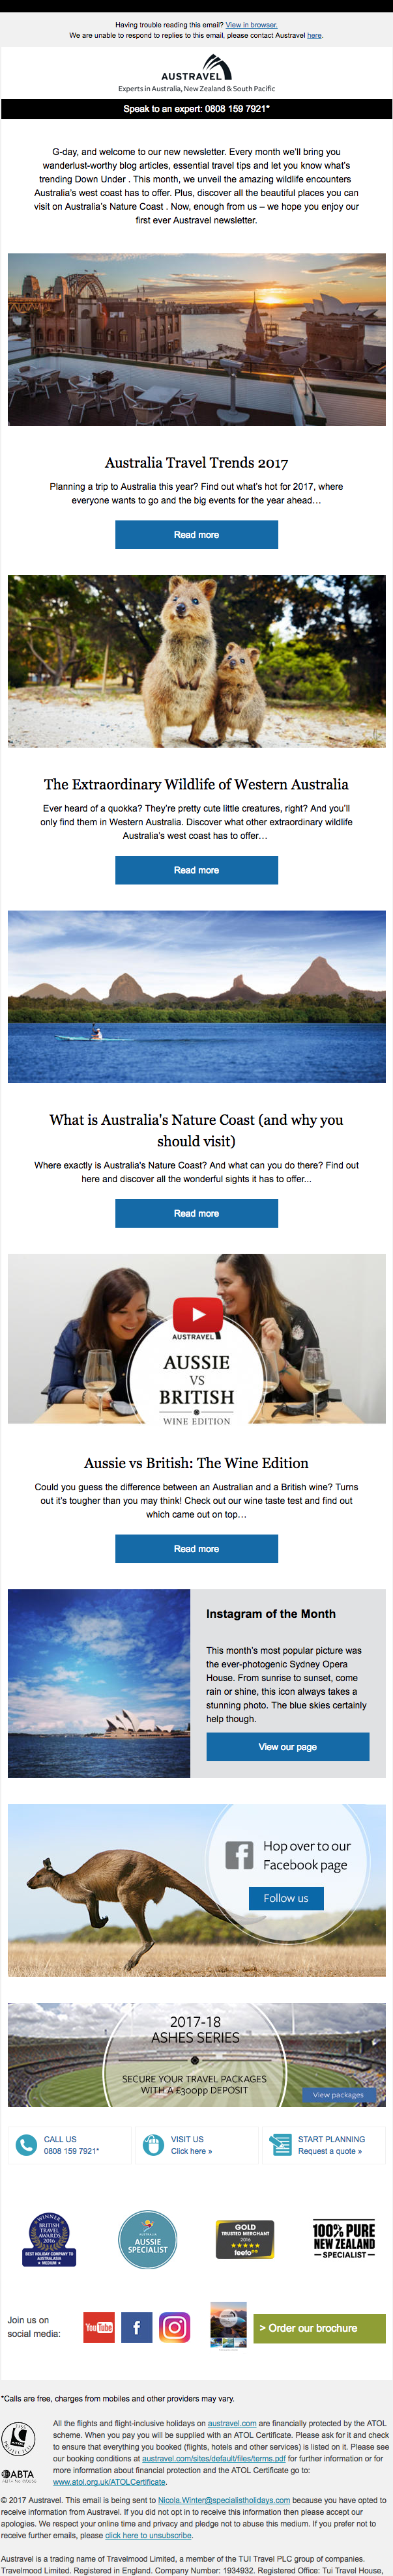 Austravel Content Email